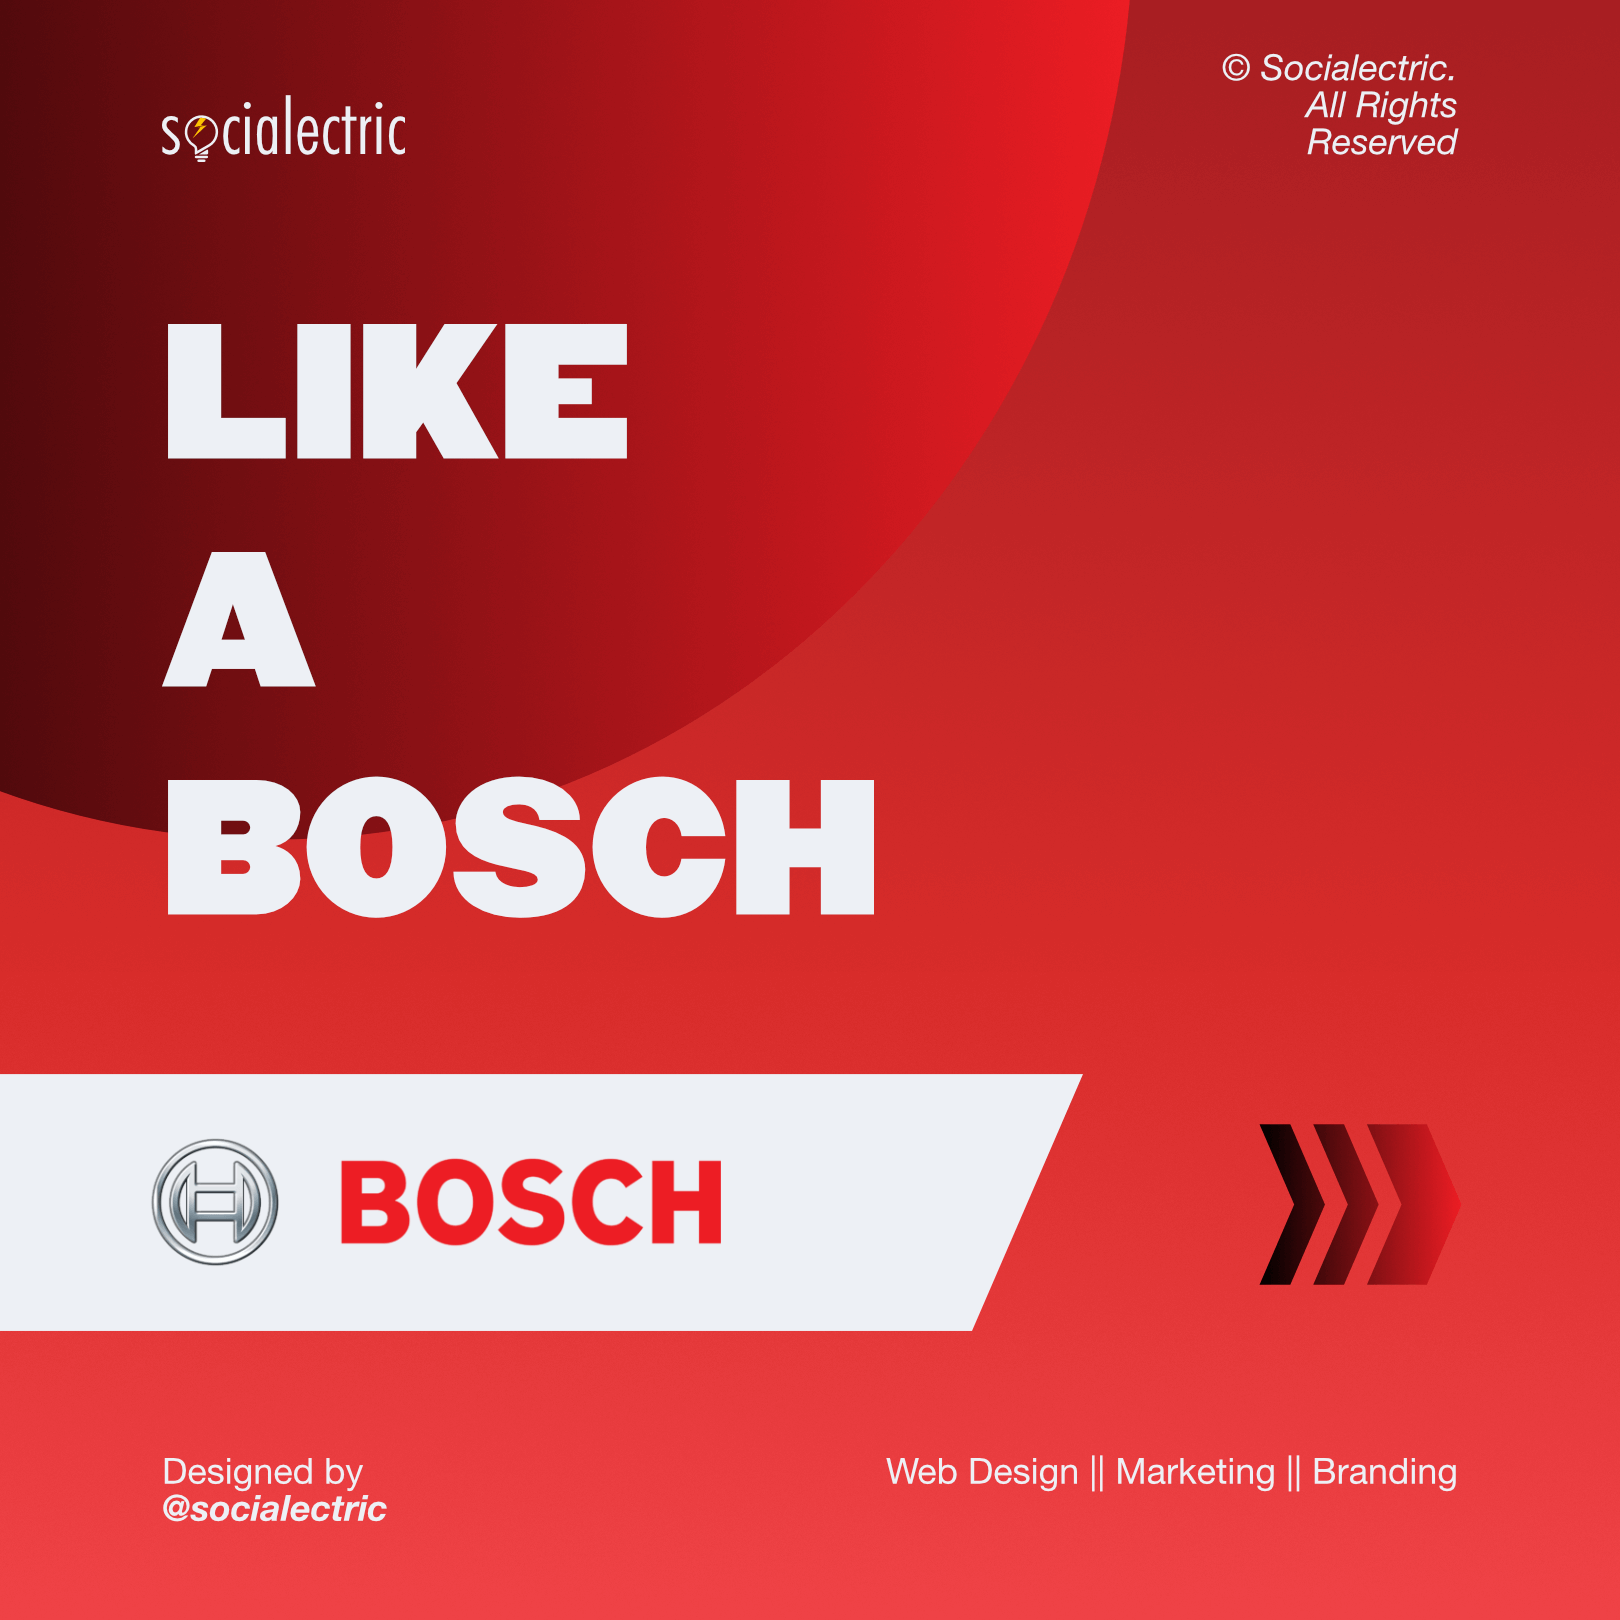 Like a Bosch Socialectric Instagram Posts